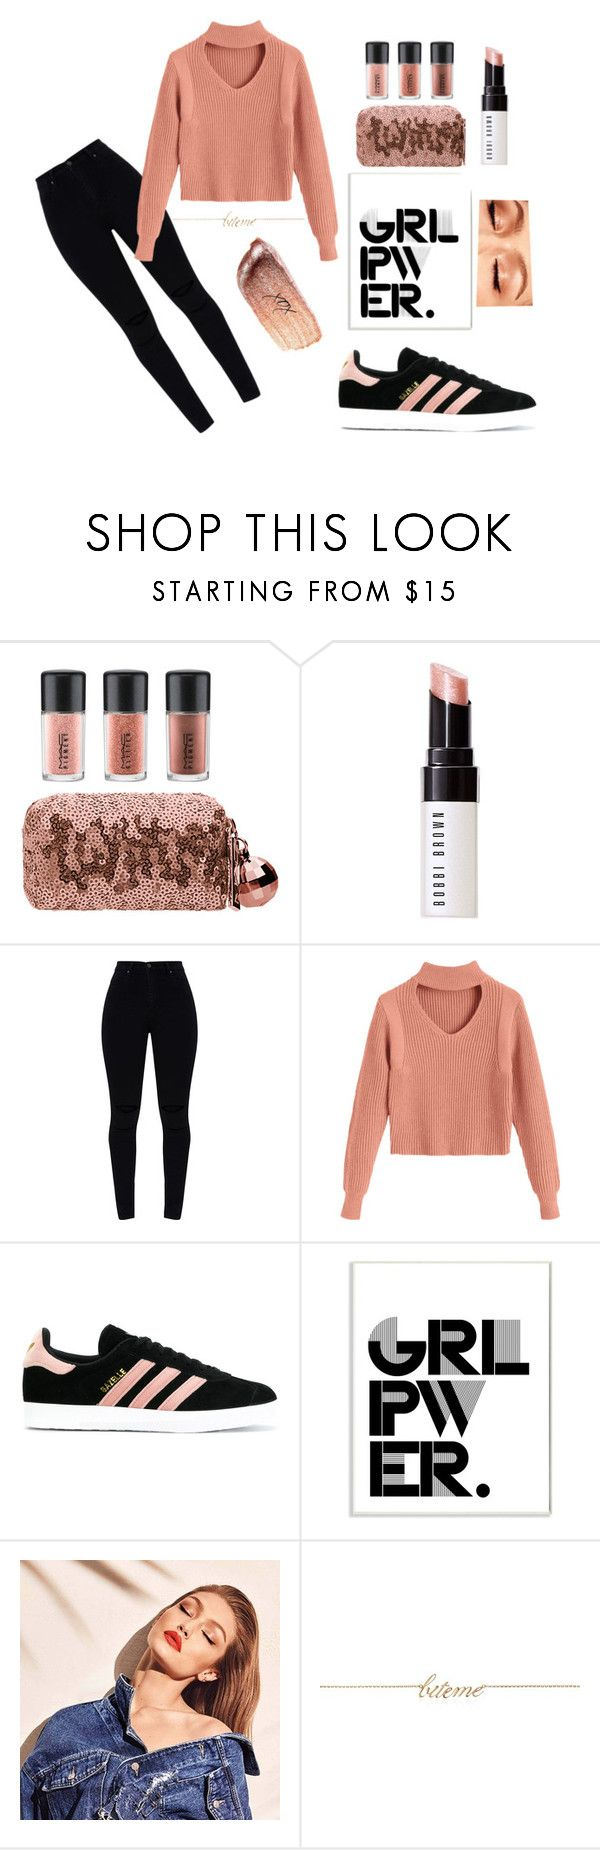 """Airport Mischief"" by tysonishere ❤ liked on Polyvore featuring MAC Cosmetics, Bobbi Brown Cosmetics, adidas, Stupell, Maybelline, Magdalena Frackowiak and Bite"